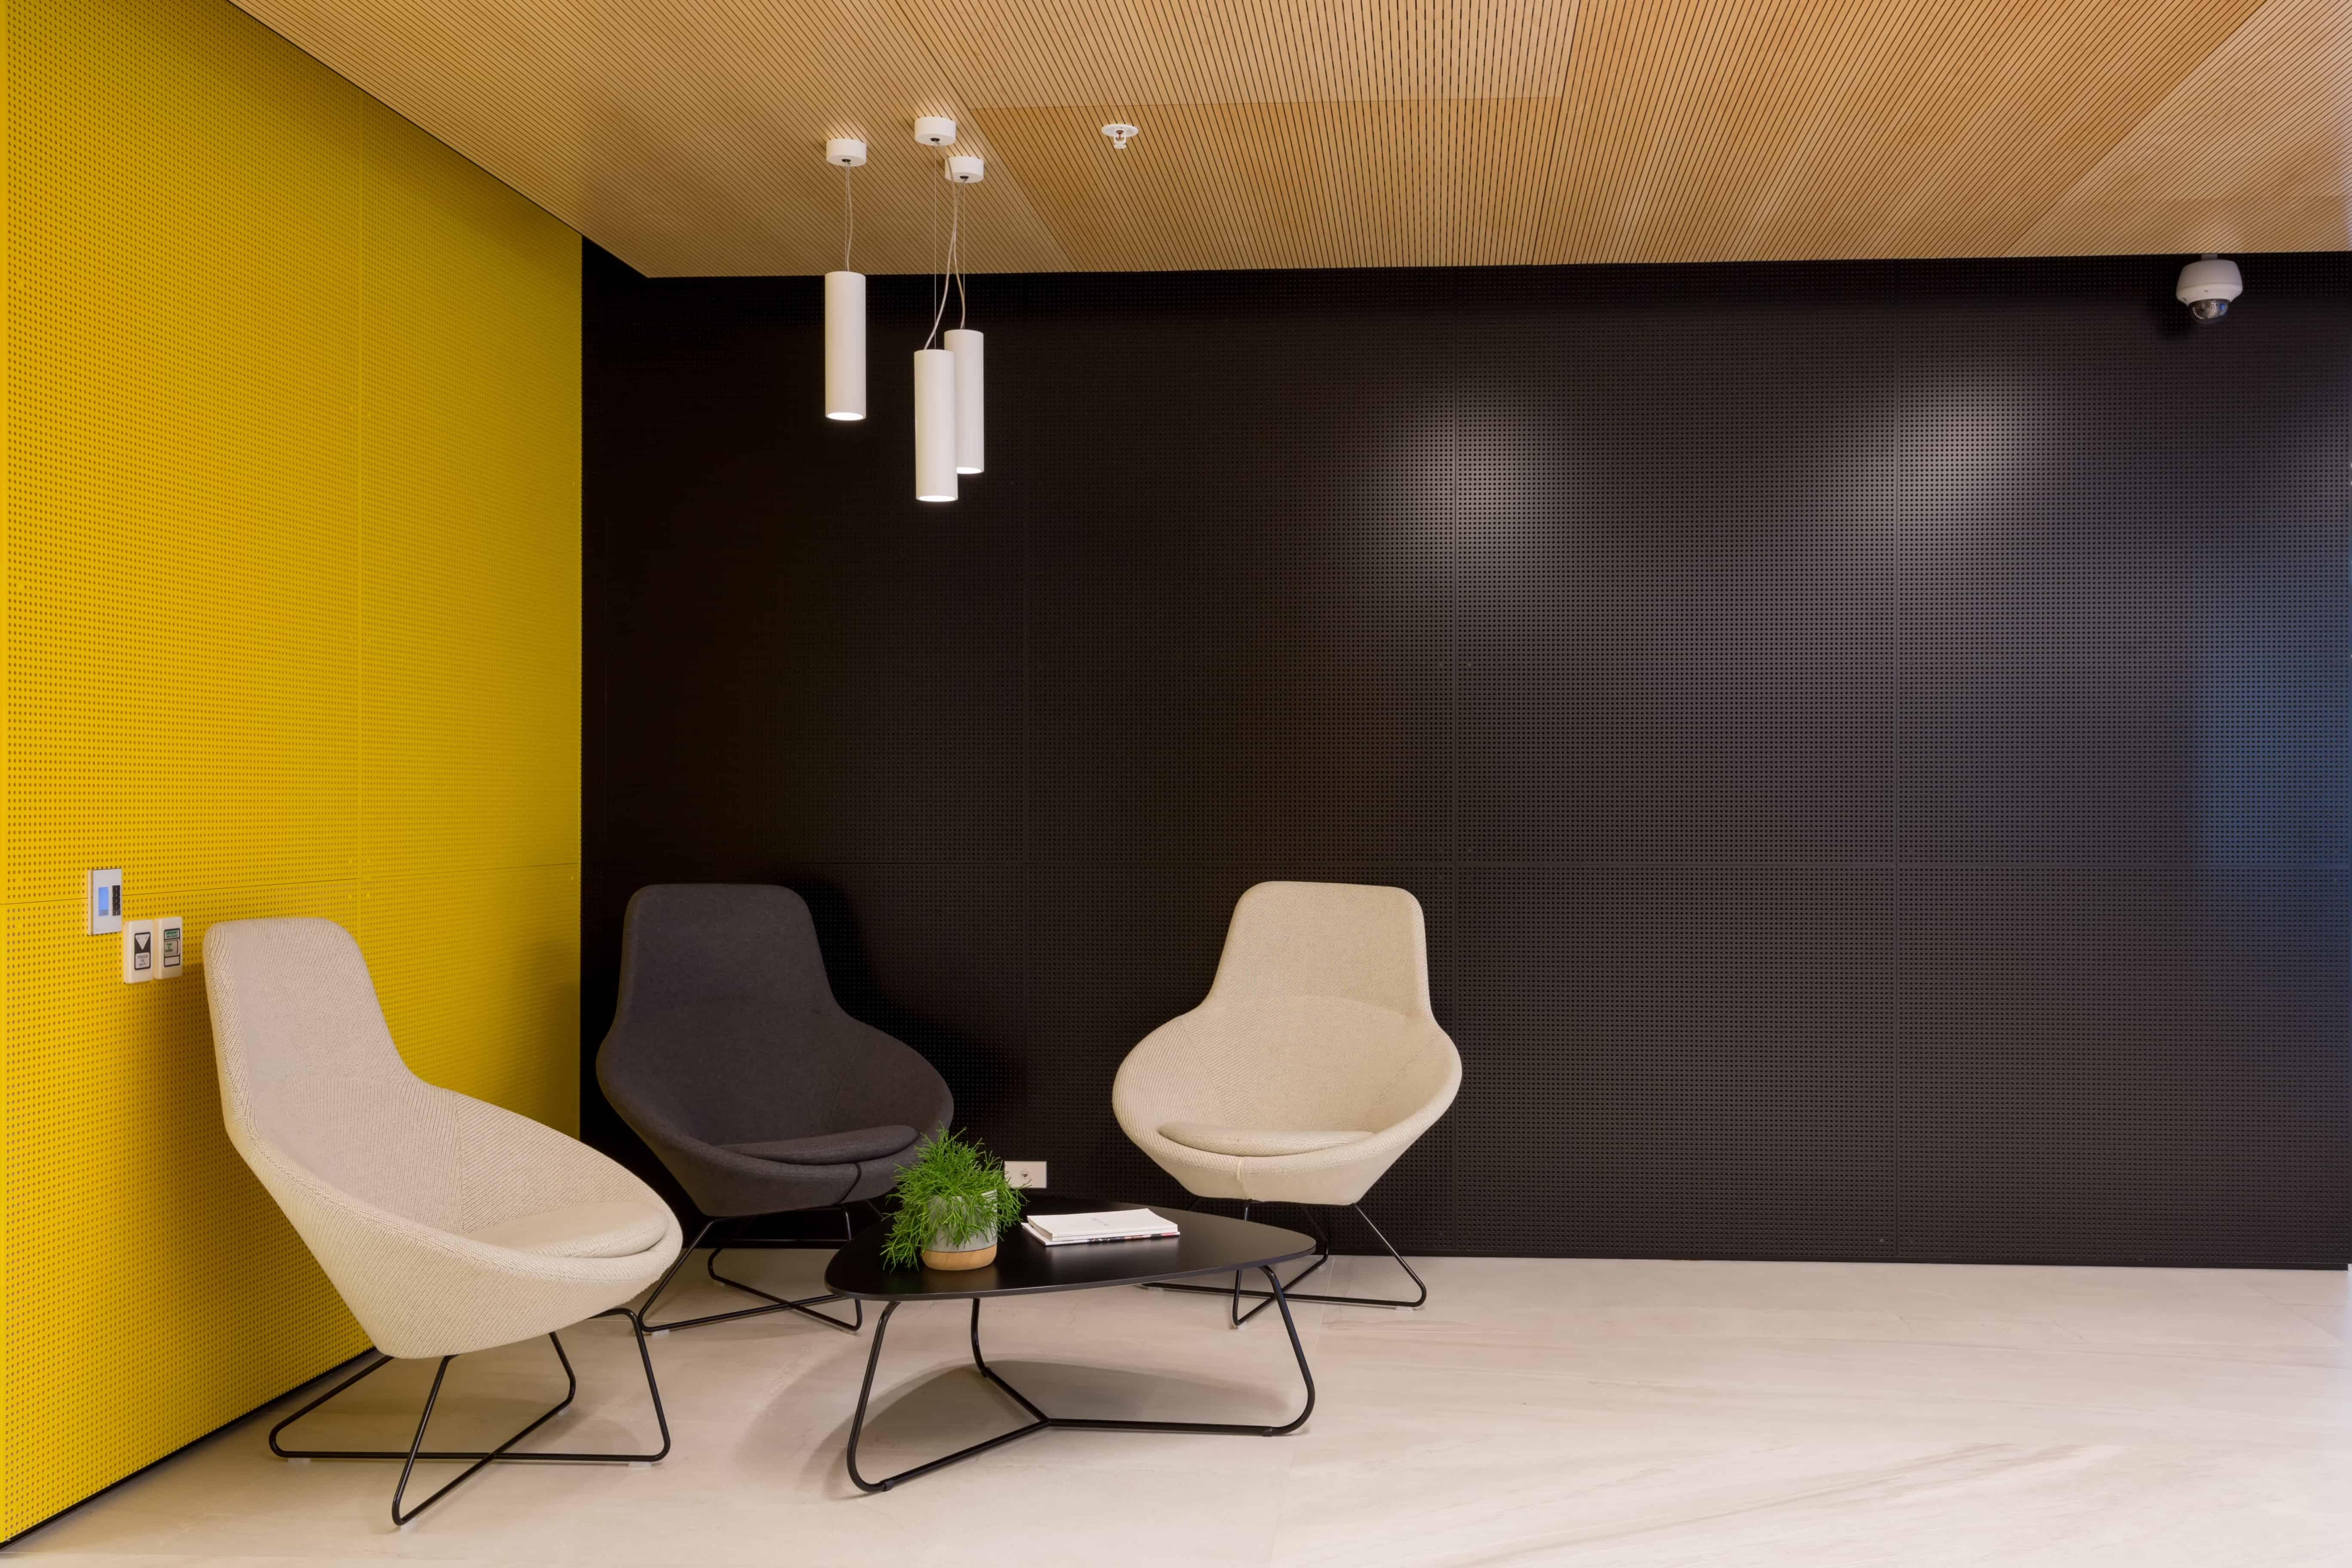 IBM office in Auckland workplace waiting area design with yellow and blue walls and low table and chairs